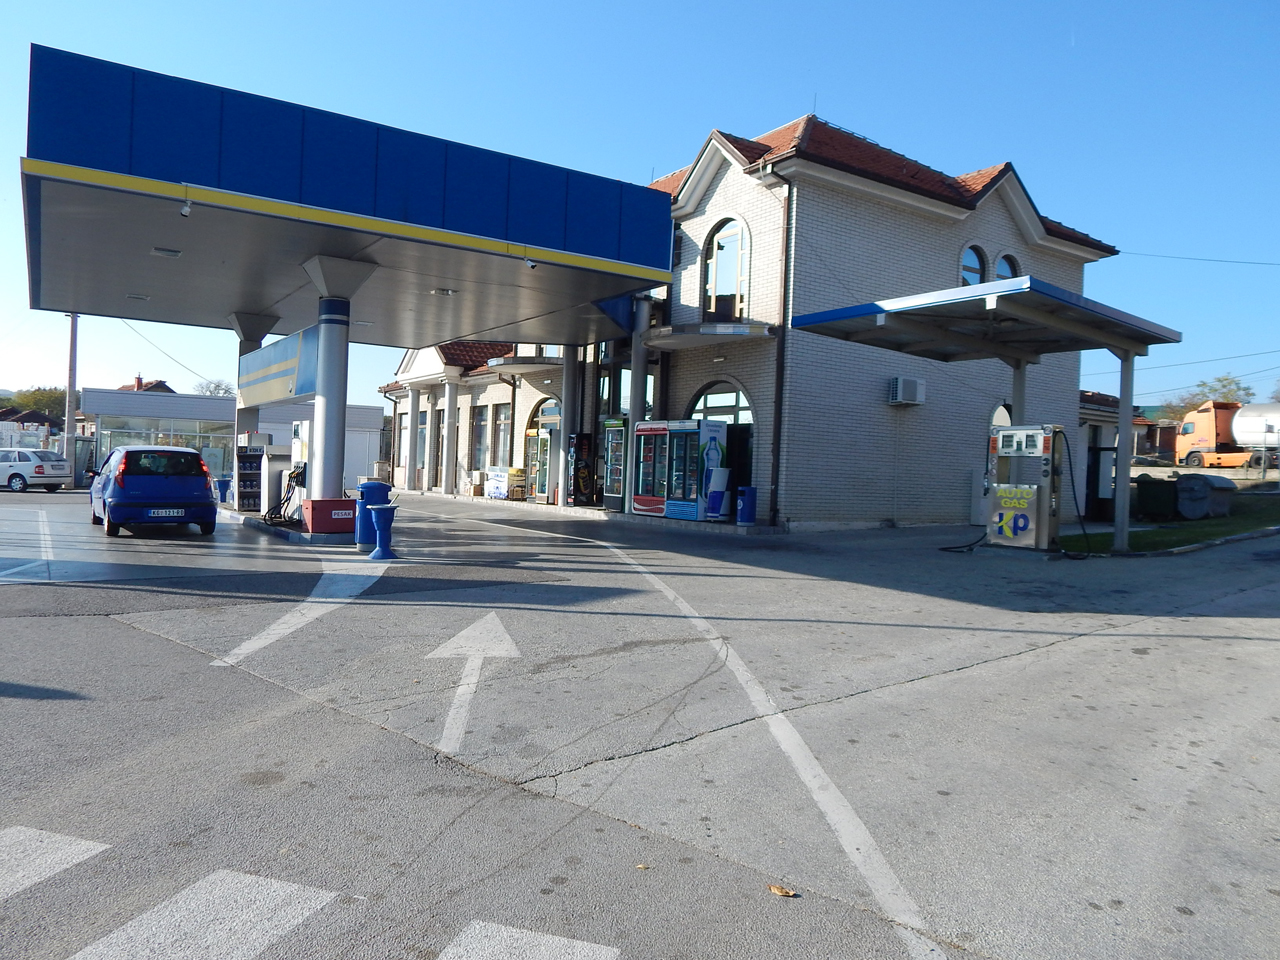 KOLE PETROL Vehicle registration and testing Kragujevac - Photo 2